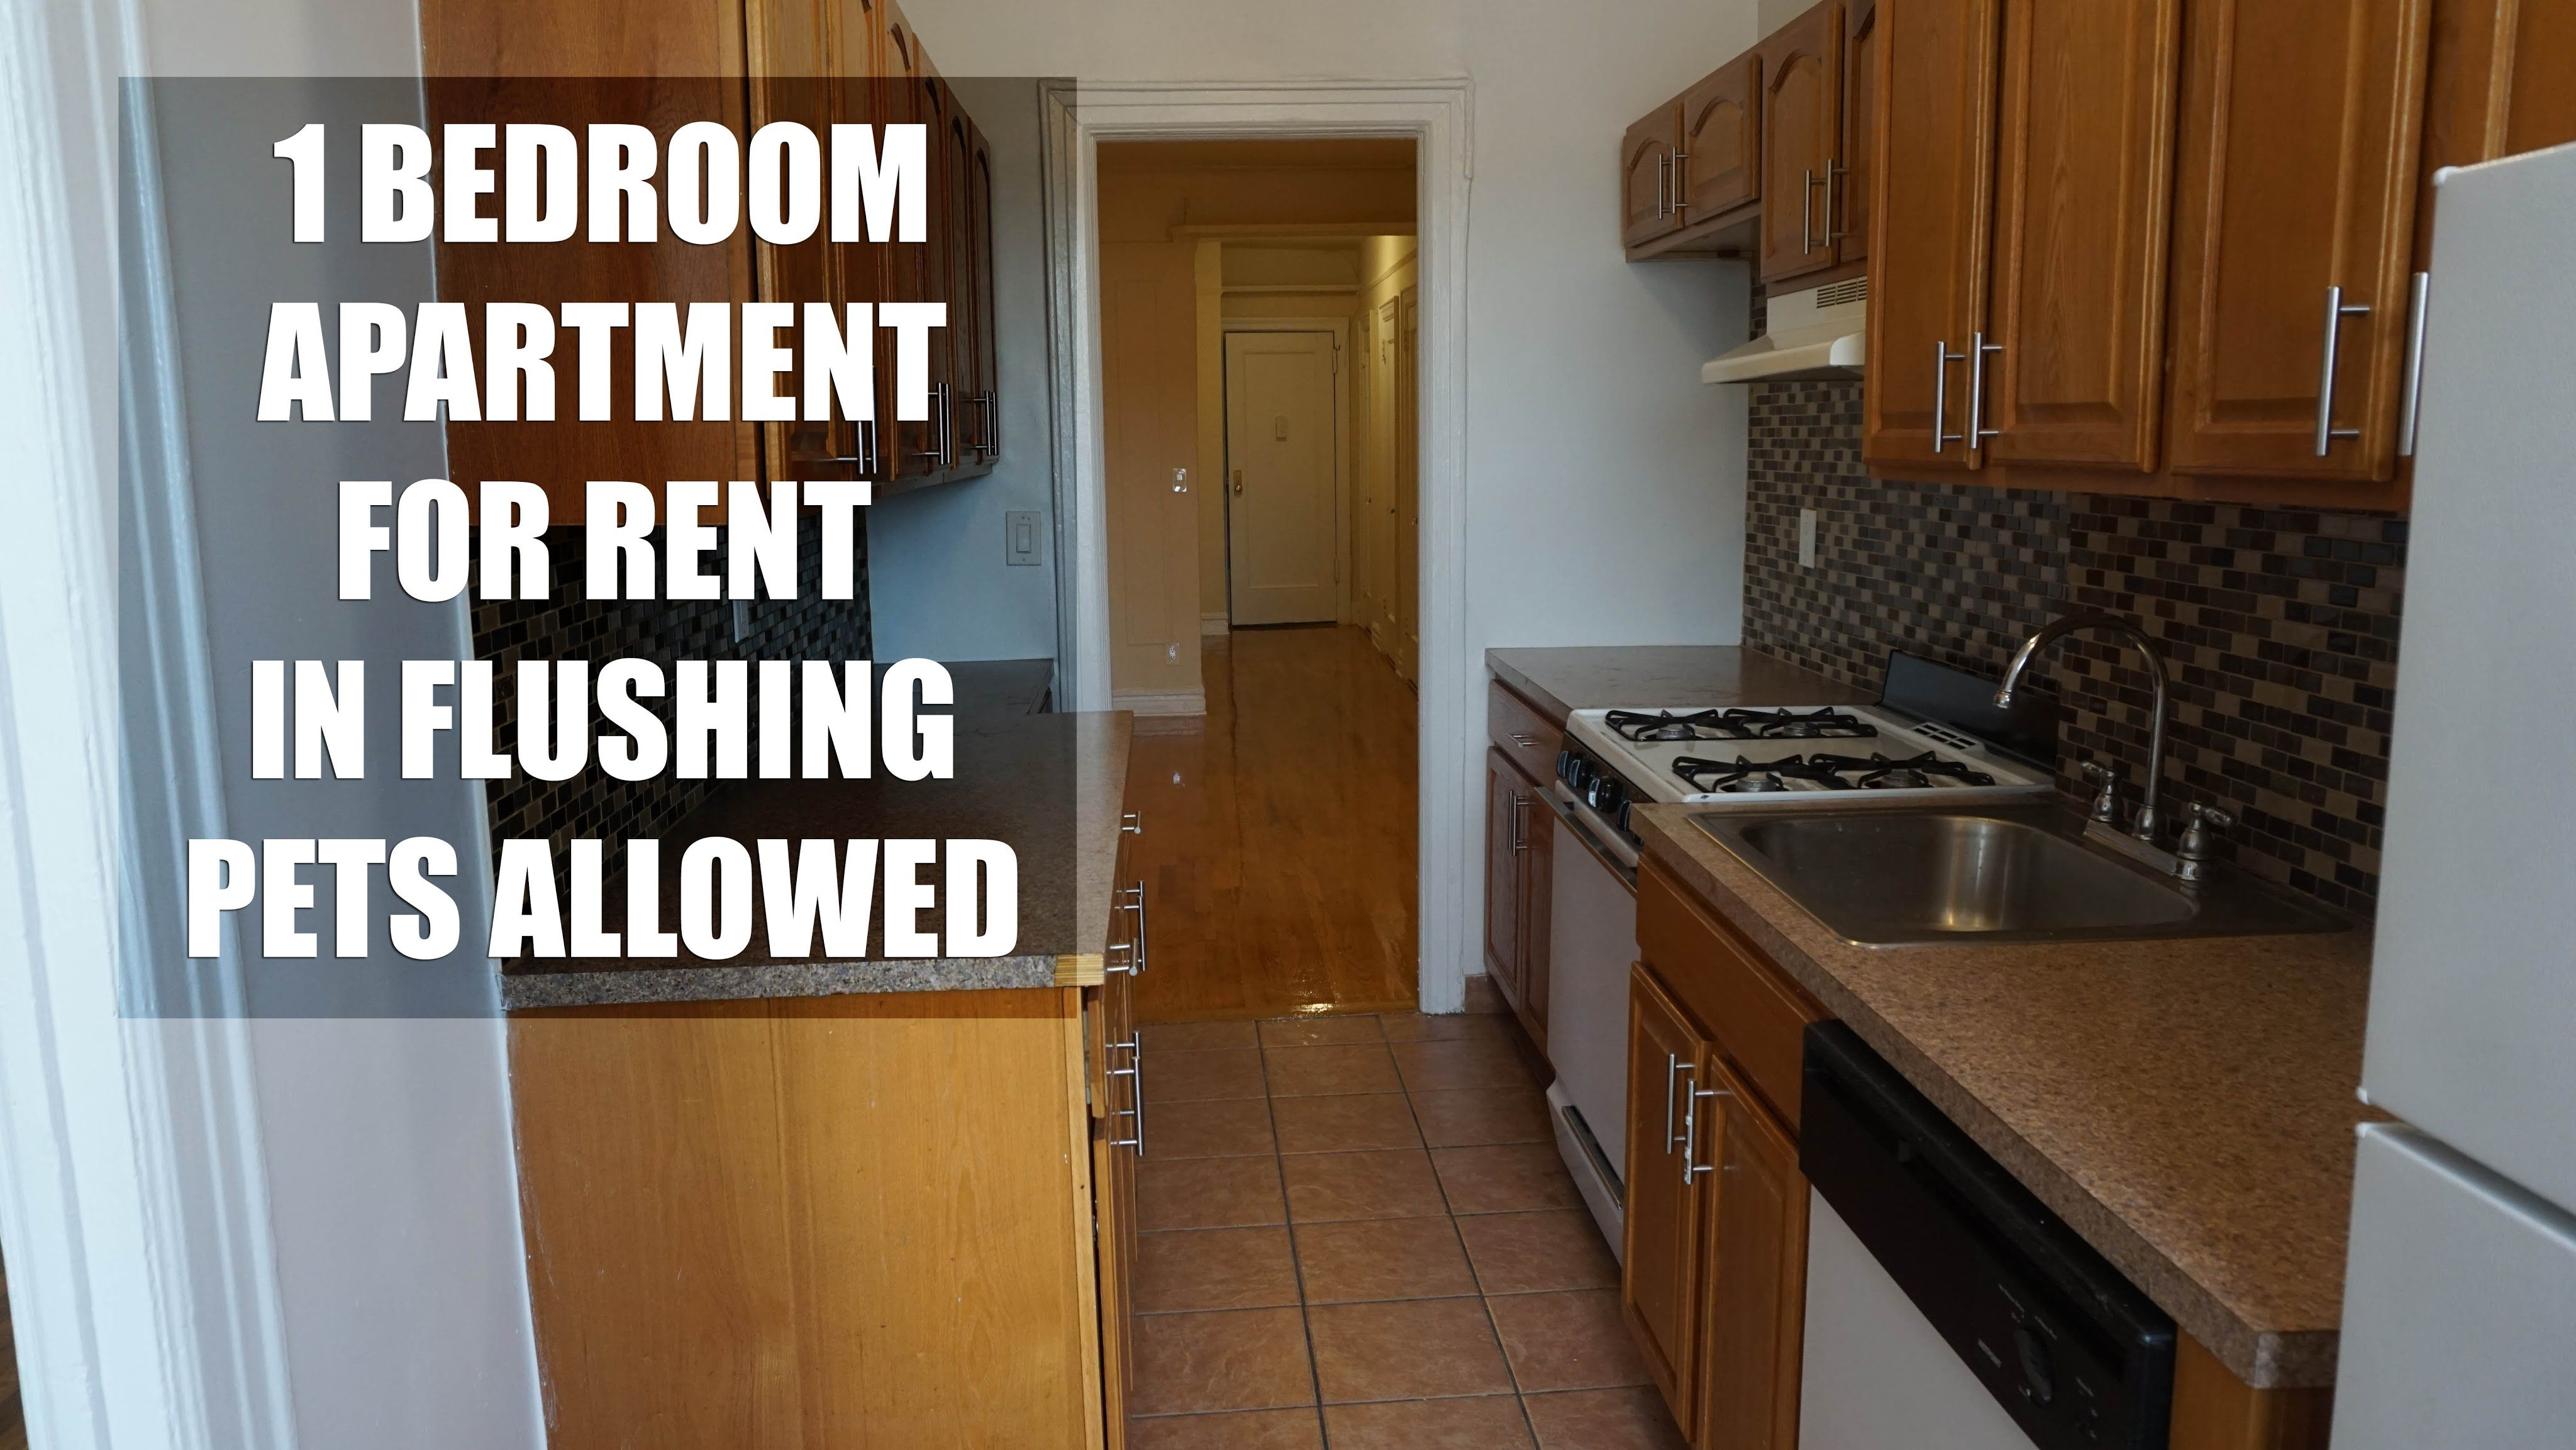 1 Bedroom apartment for rent in Flushing, Queens, NYC 1